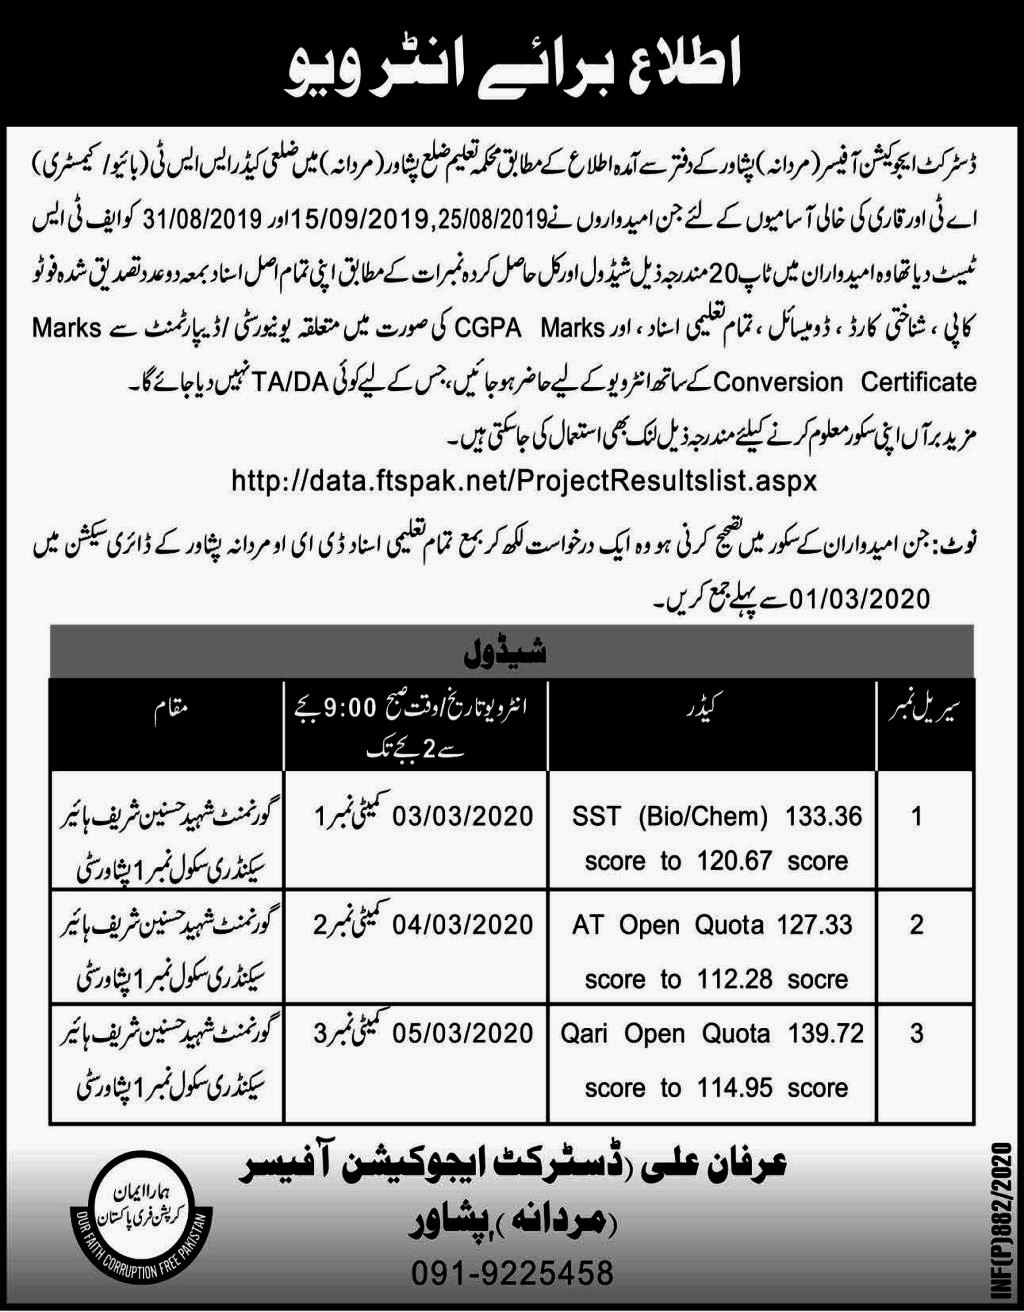 KPK Education Department jobs interview dates and list